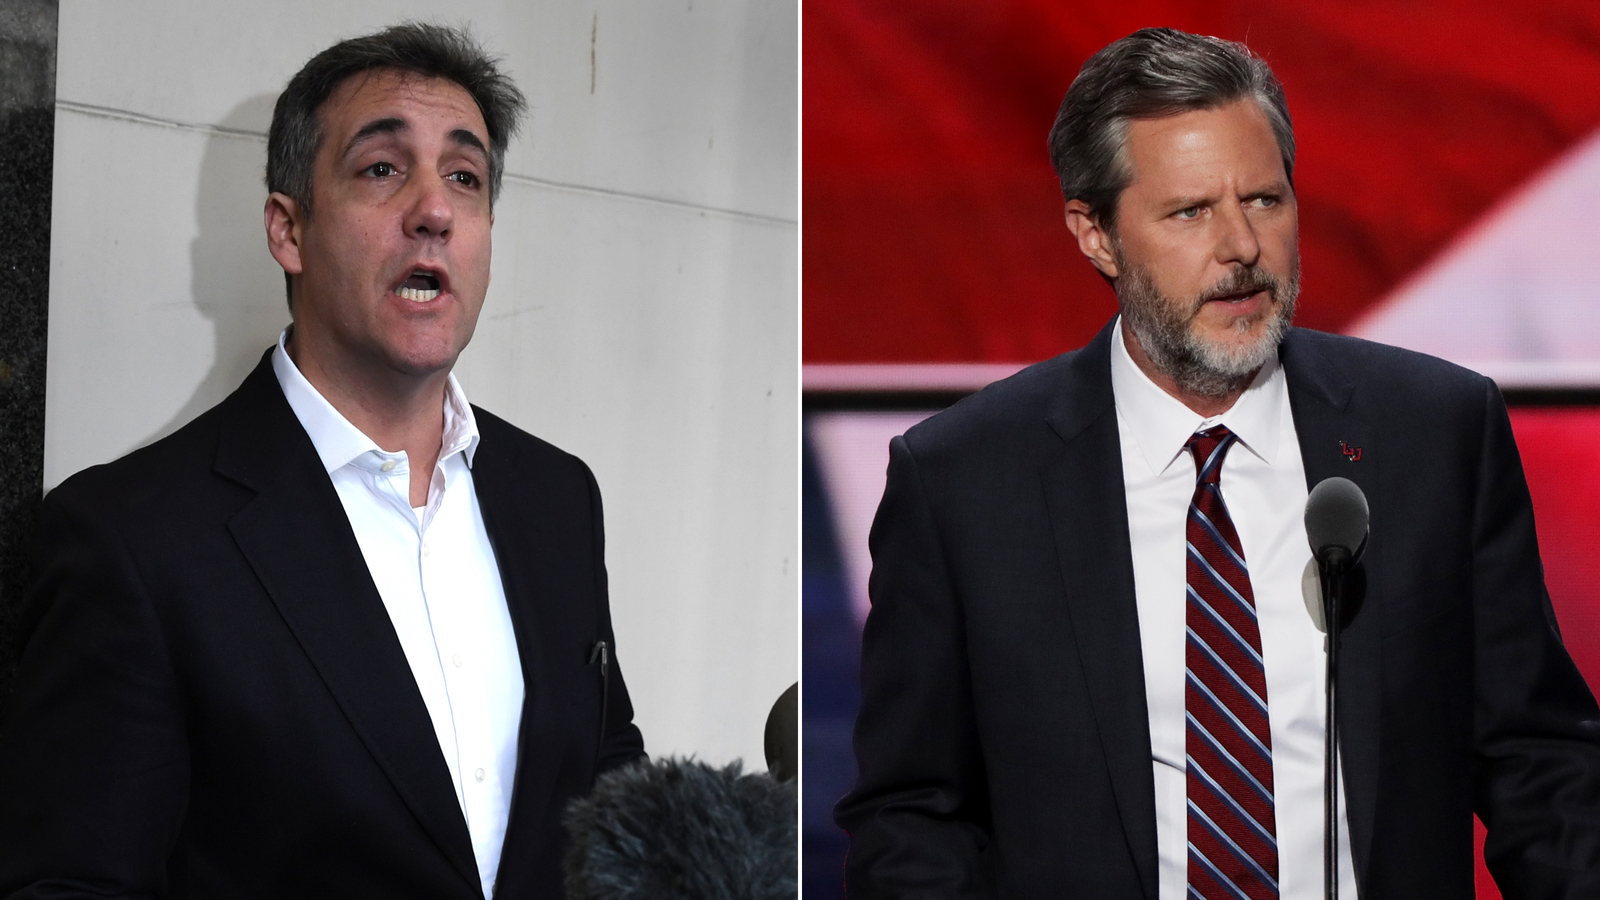 Michael Cohen, Trump's former attorney, says he helped the Falwells block the release of racy photos